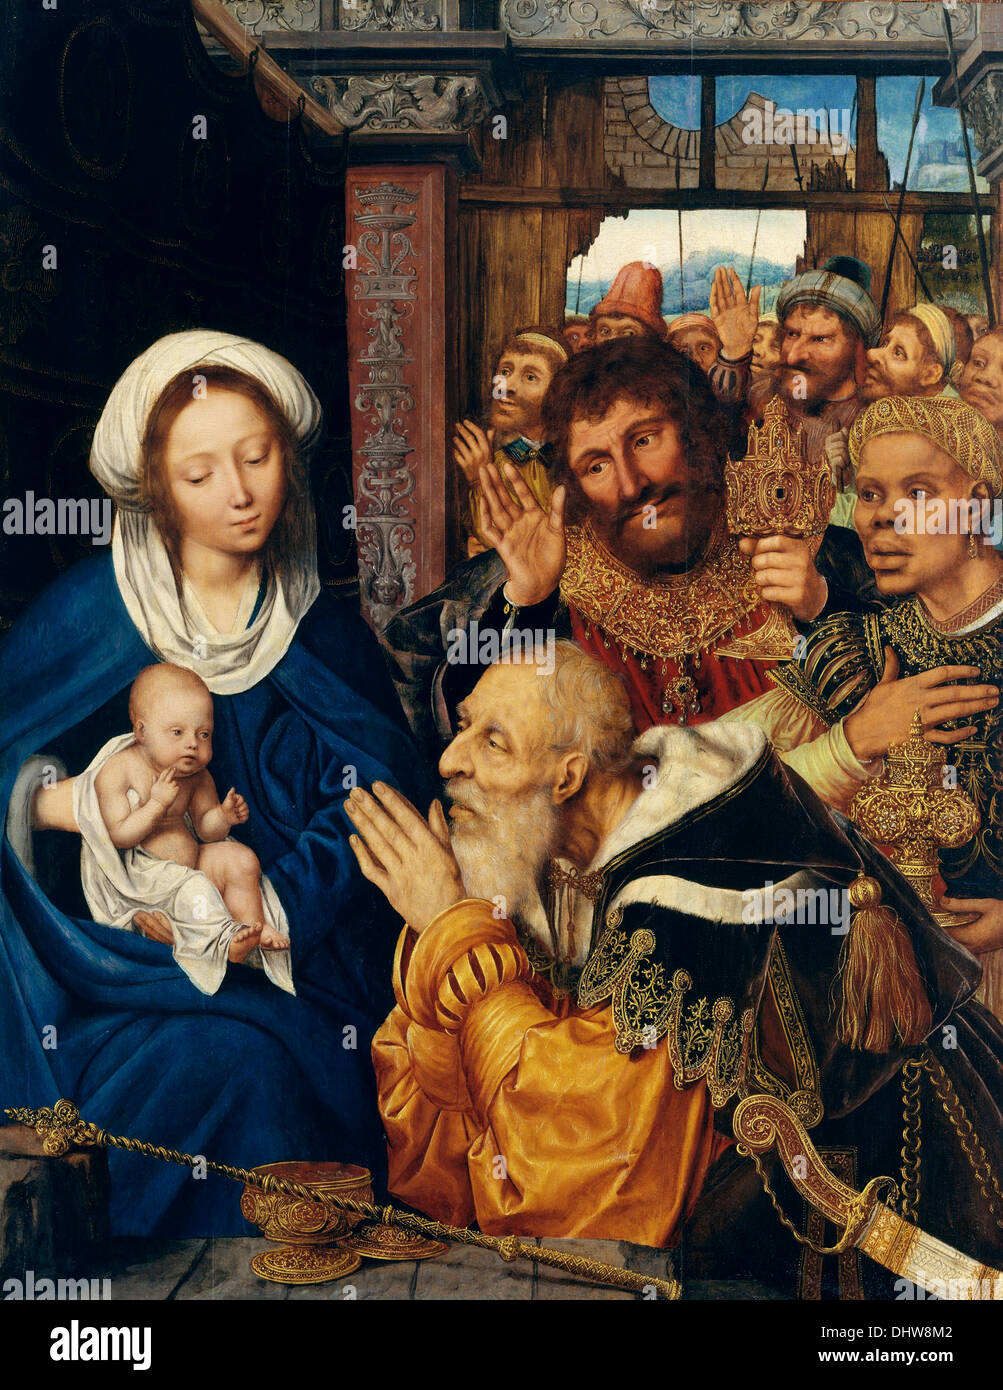 The Adoration of the Magi - by Quentin Metsys, 1526 - Stock Image